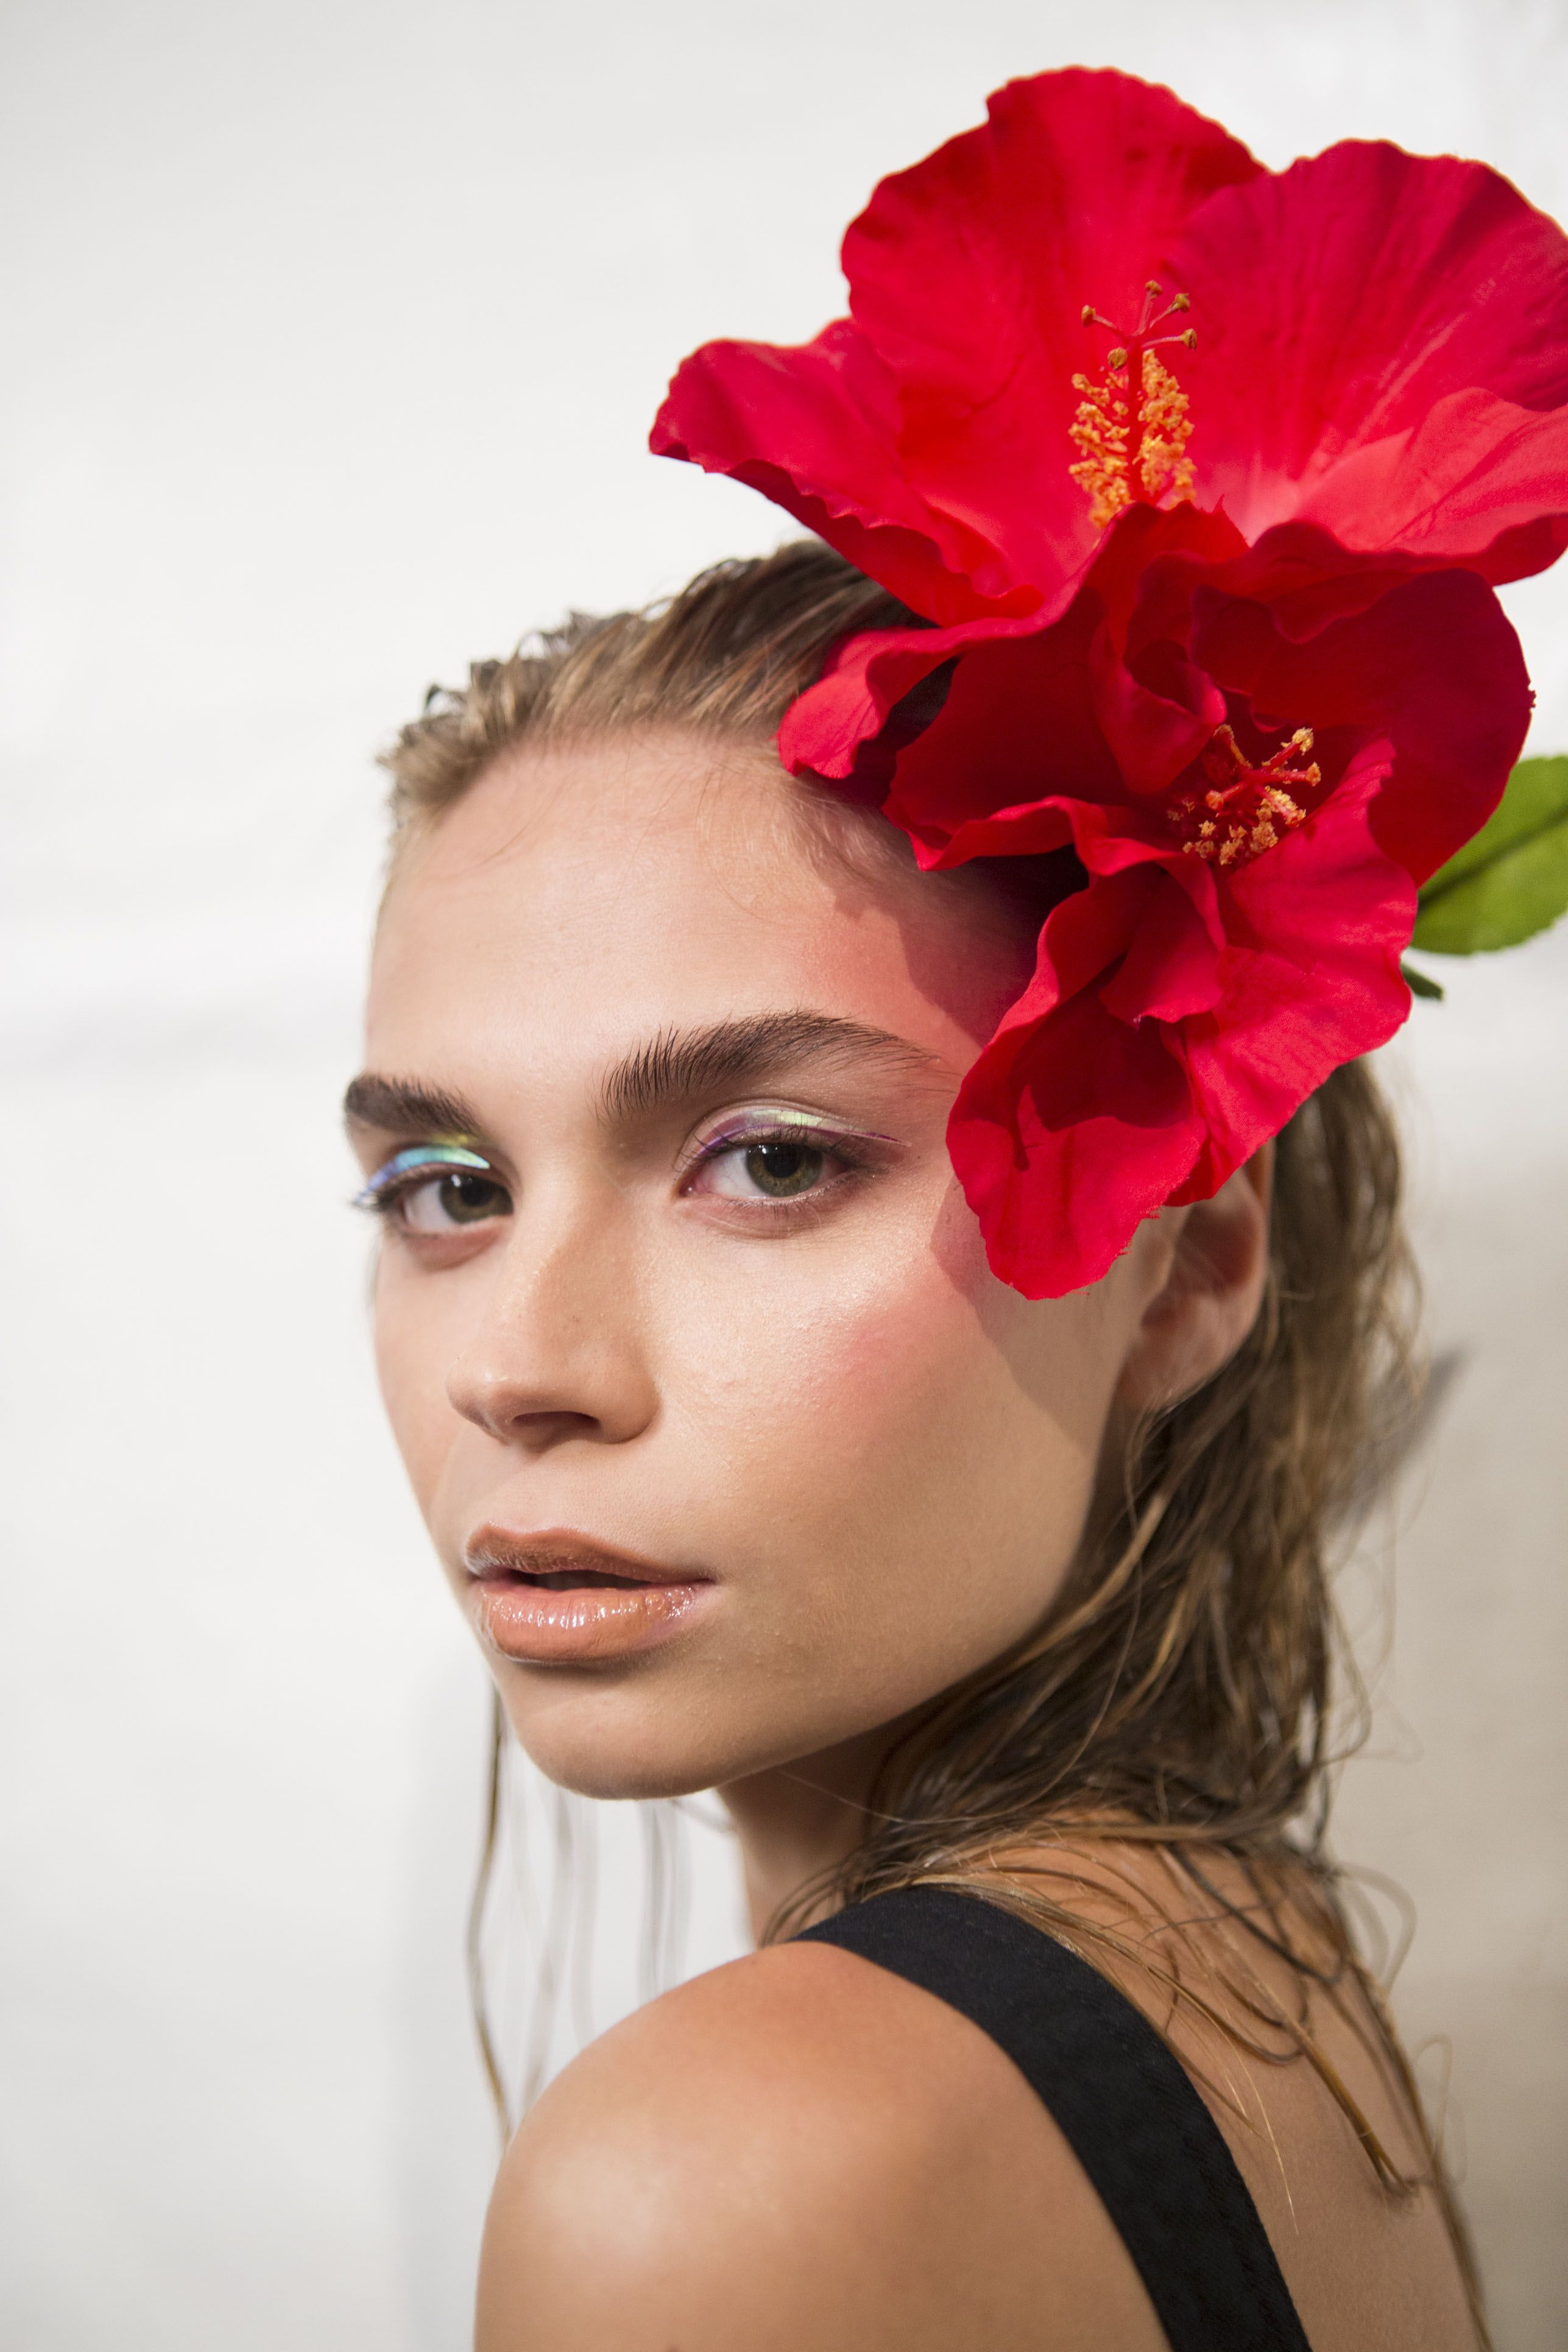 Forum on this topic: Spring Beauty Trends You Can Wear RightNow, spring-beauty-trends-you-can-wear-rightnow/